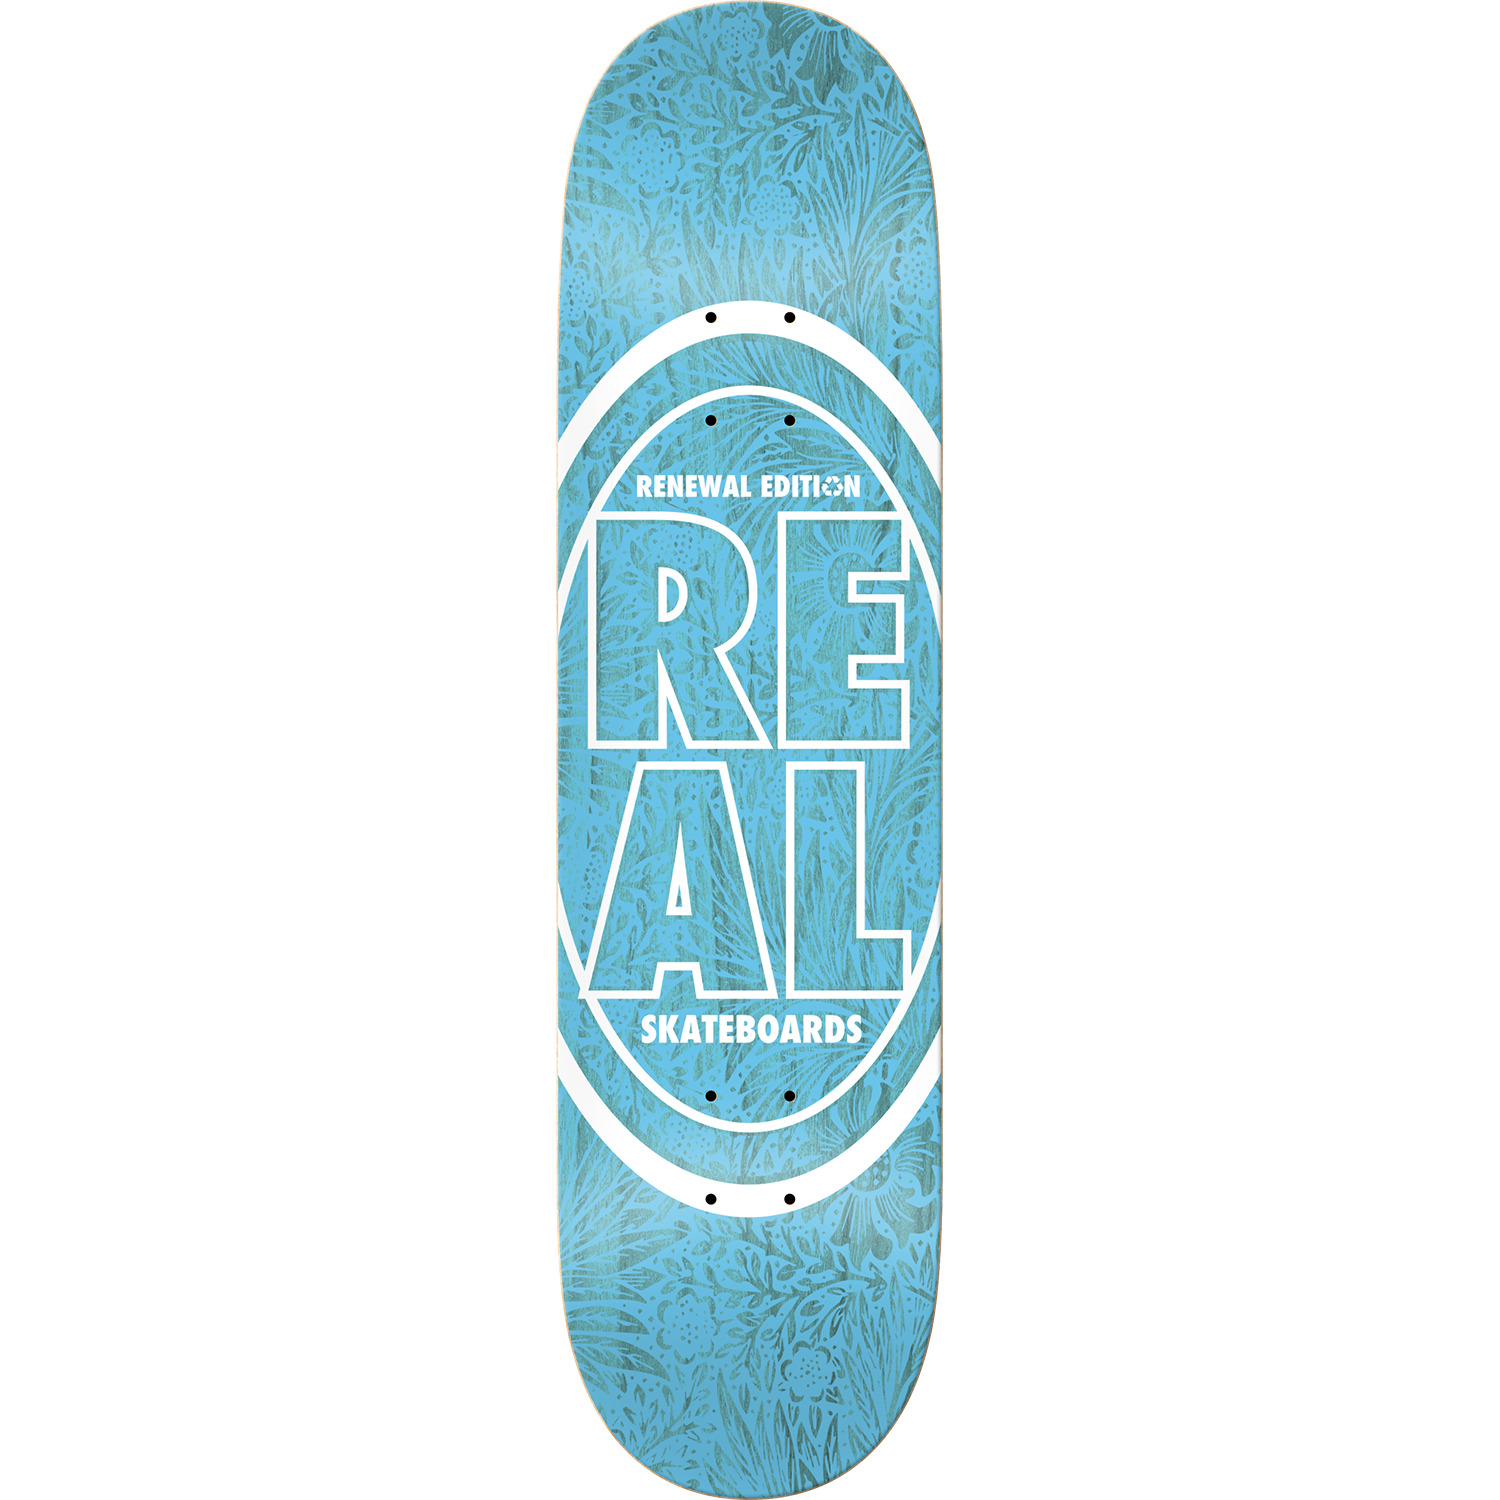 Real Skateboard Deck Ishod Lunar Slick Twintail 8.3 x 31.9 with Grip